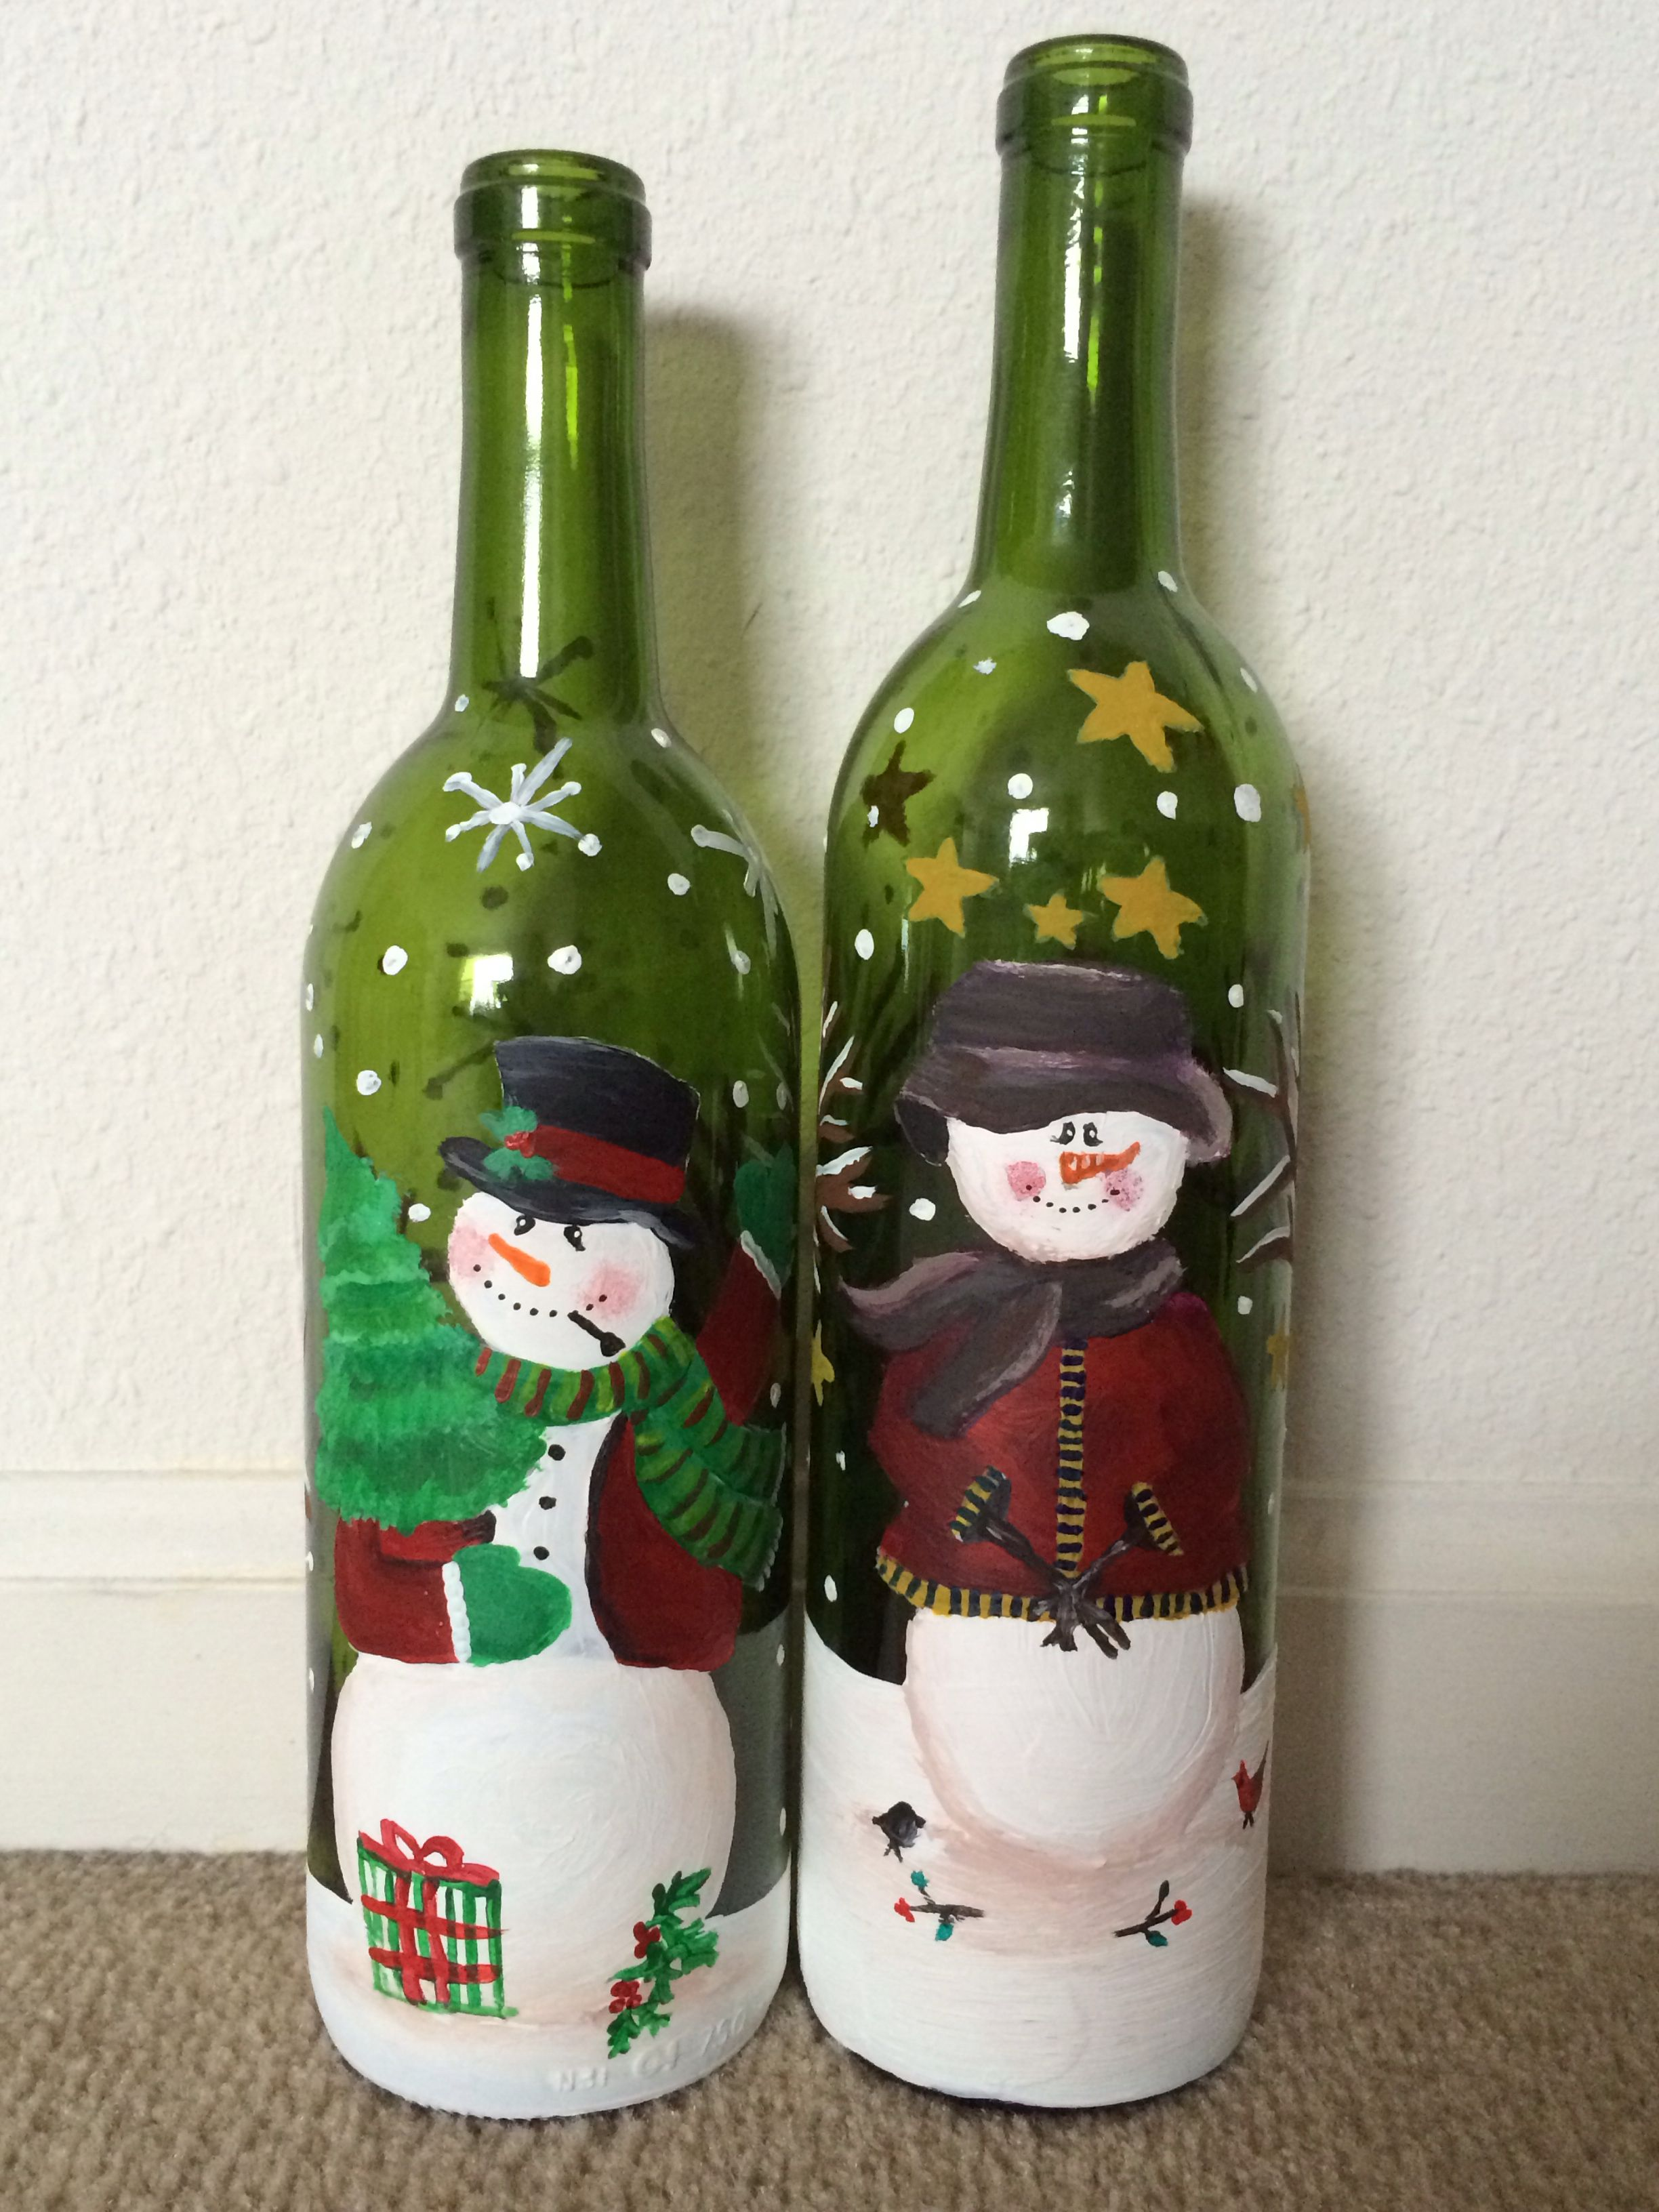 Mr and mrs snowman painted on wine bottles with acrylic for How to paint bottles with acrylic